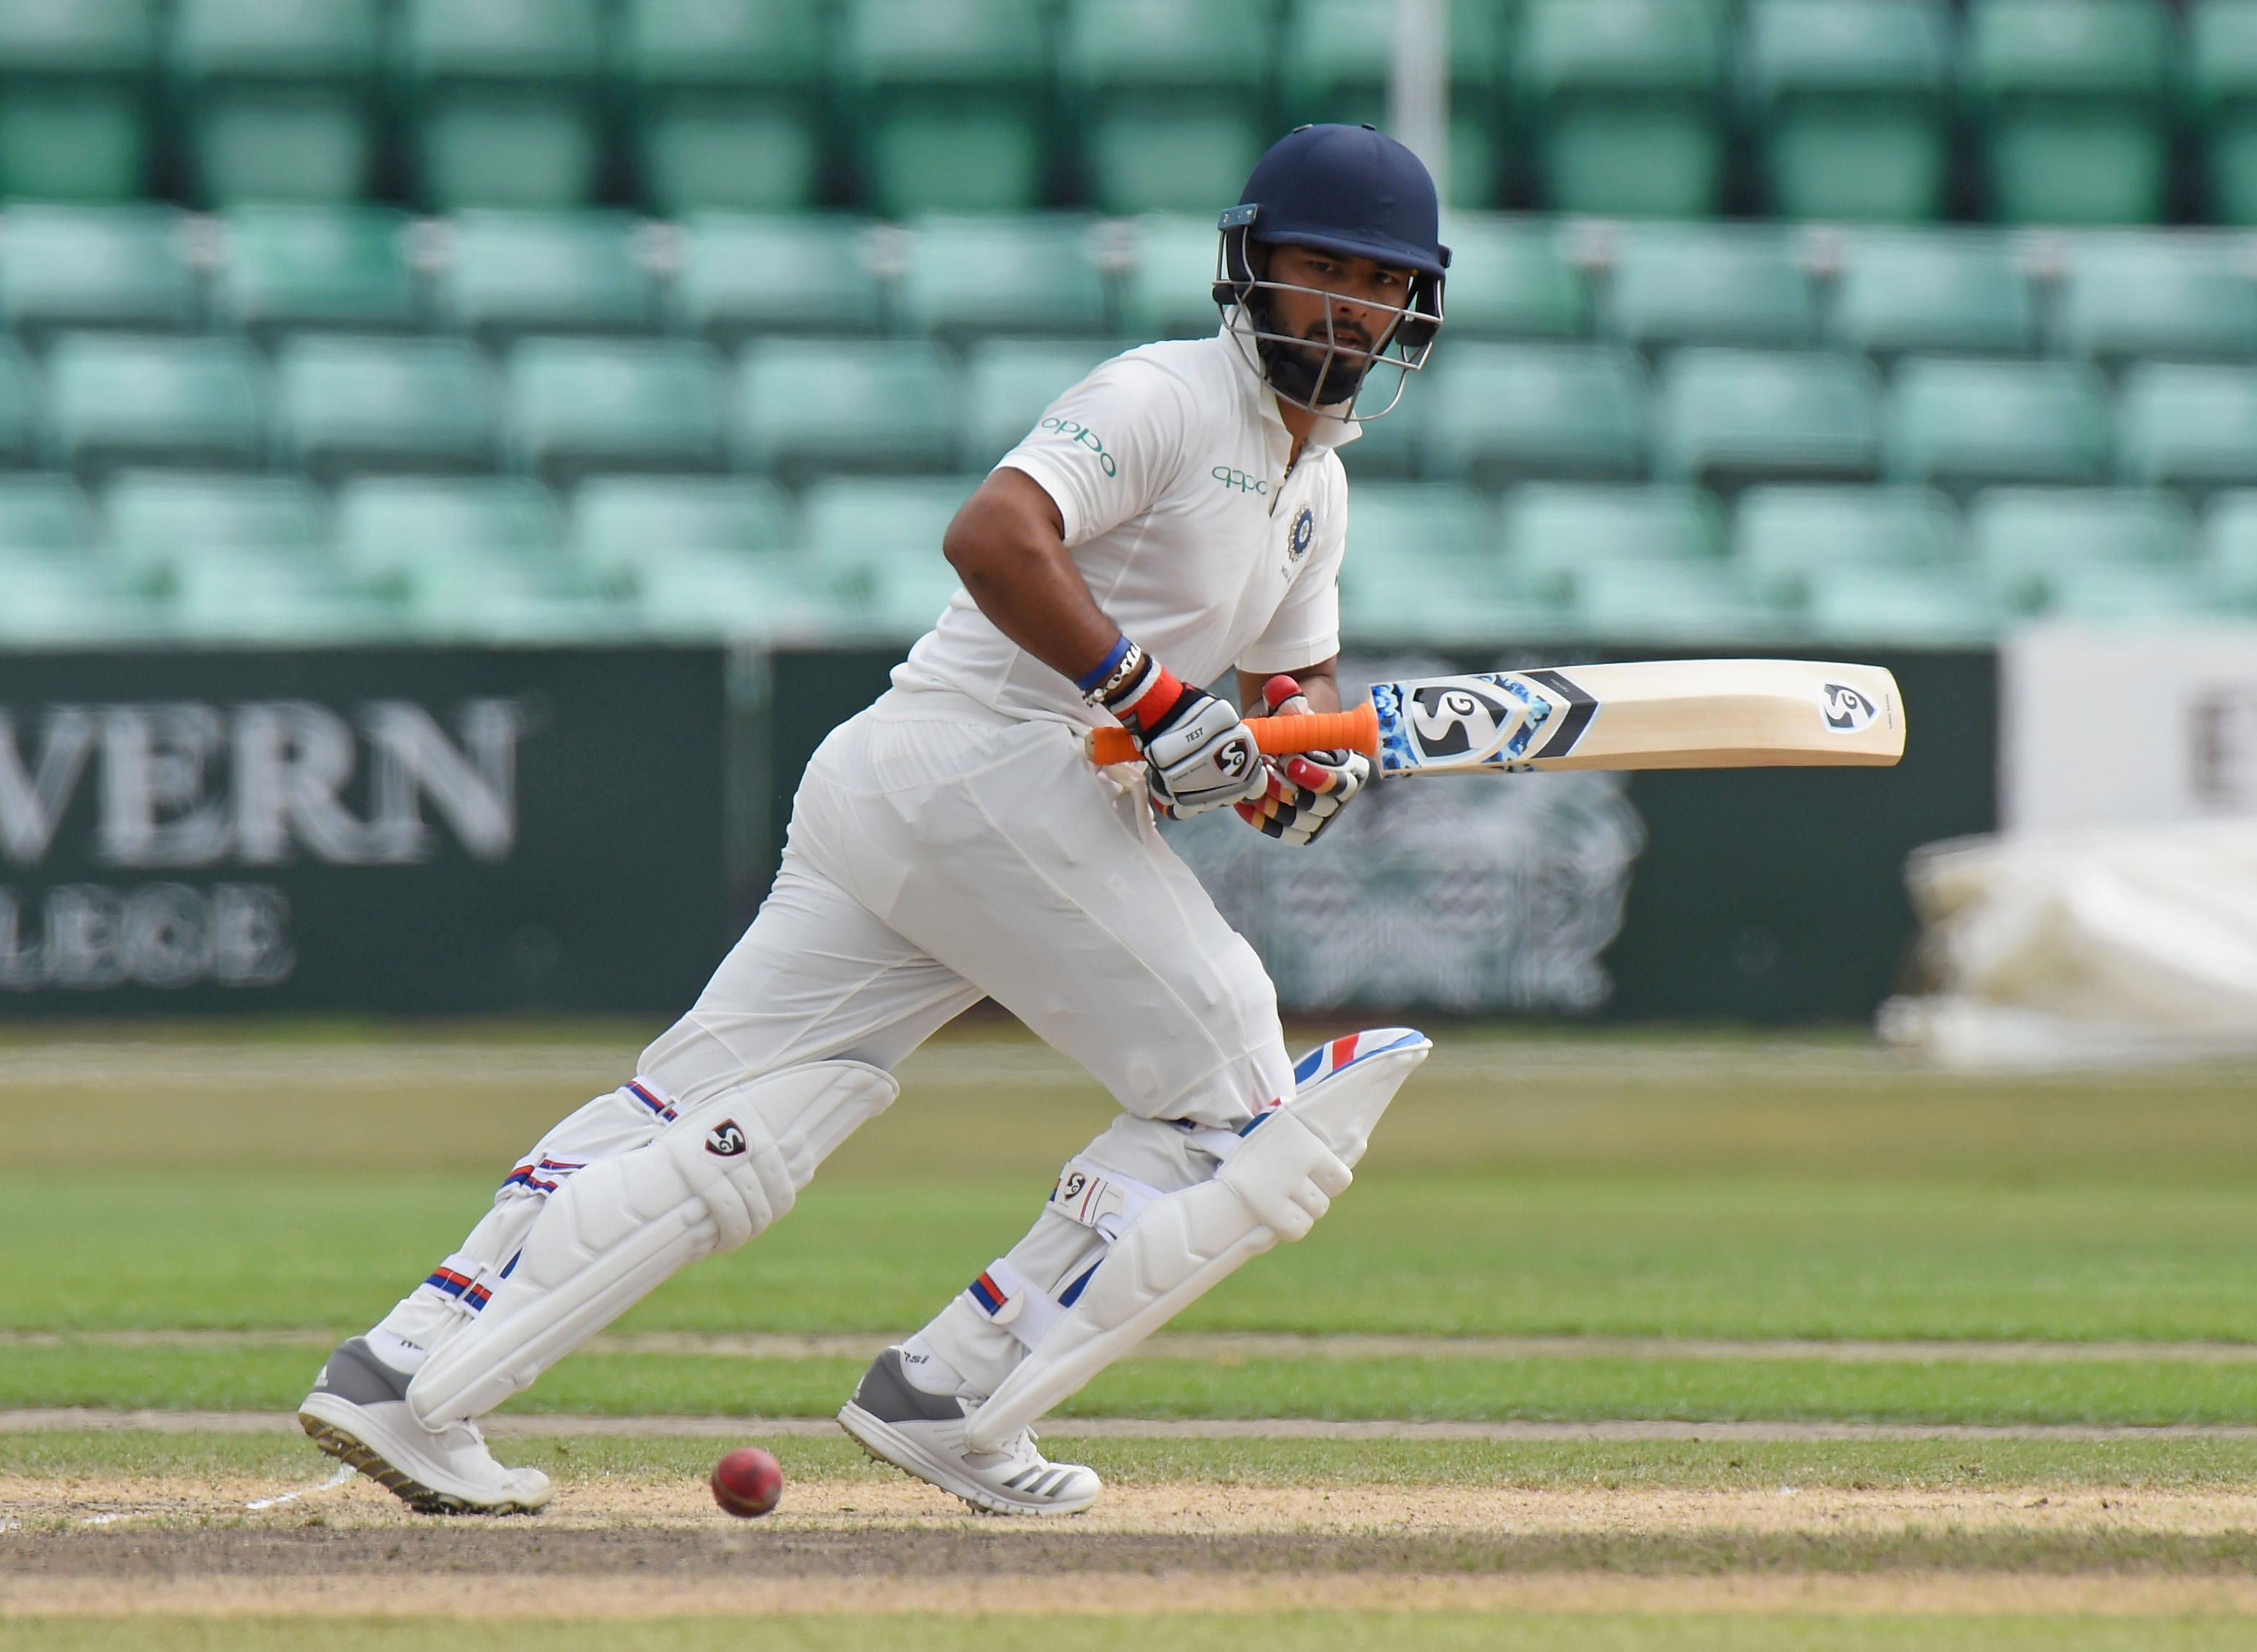 Rishabh Pant bats for India A against England Lions earlier this week | Getty